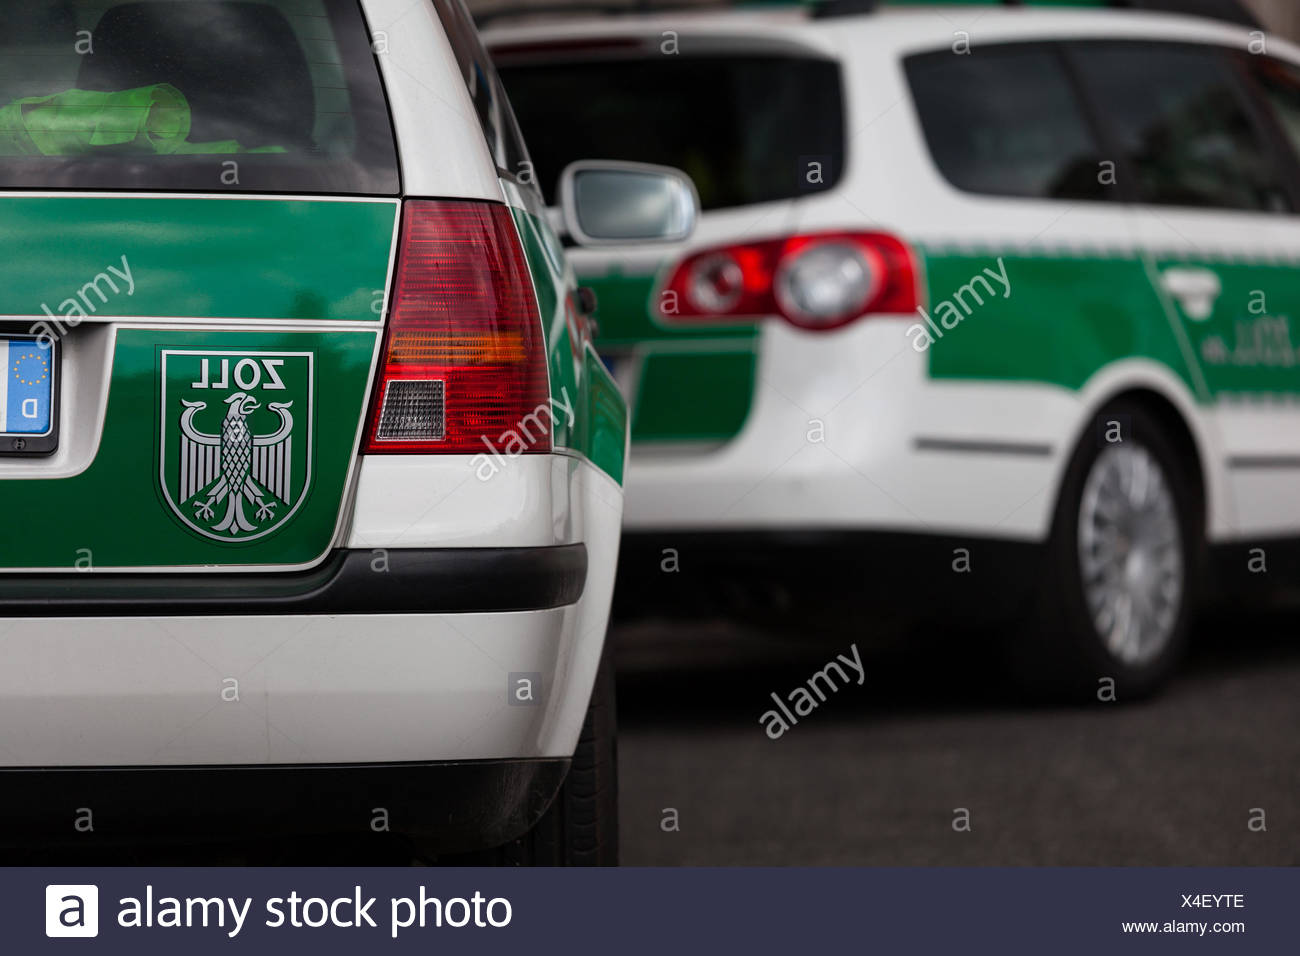 Customs patrol car - Stock Image